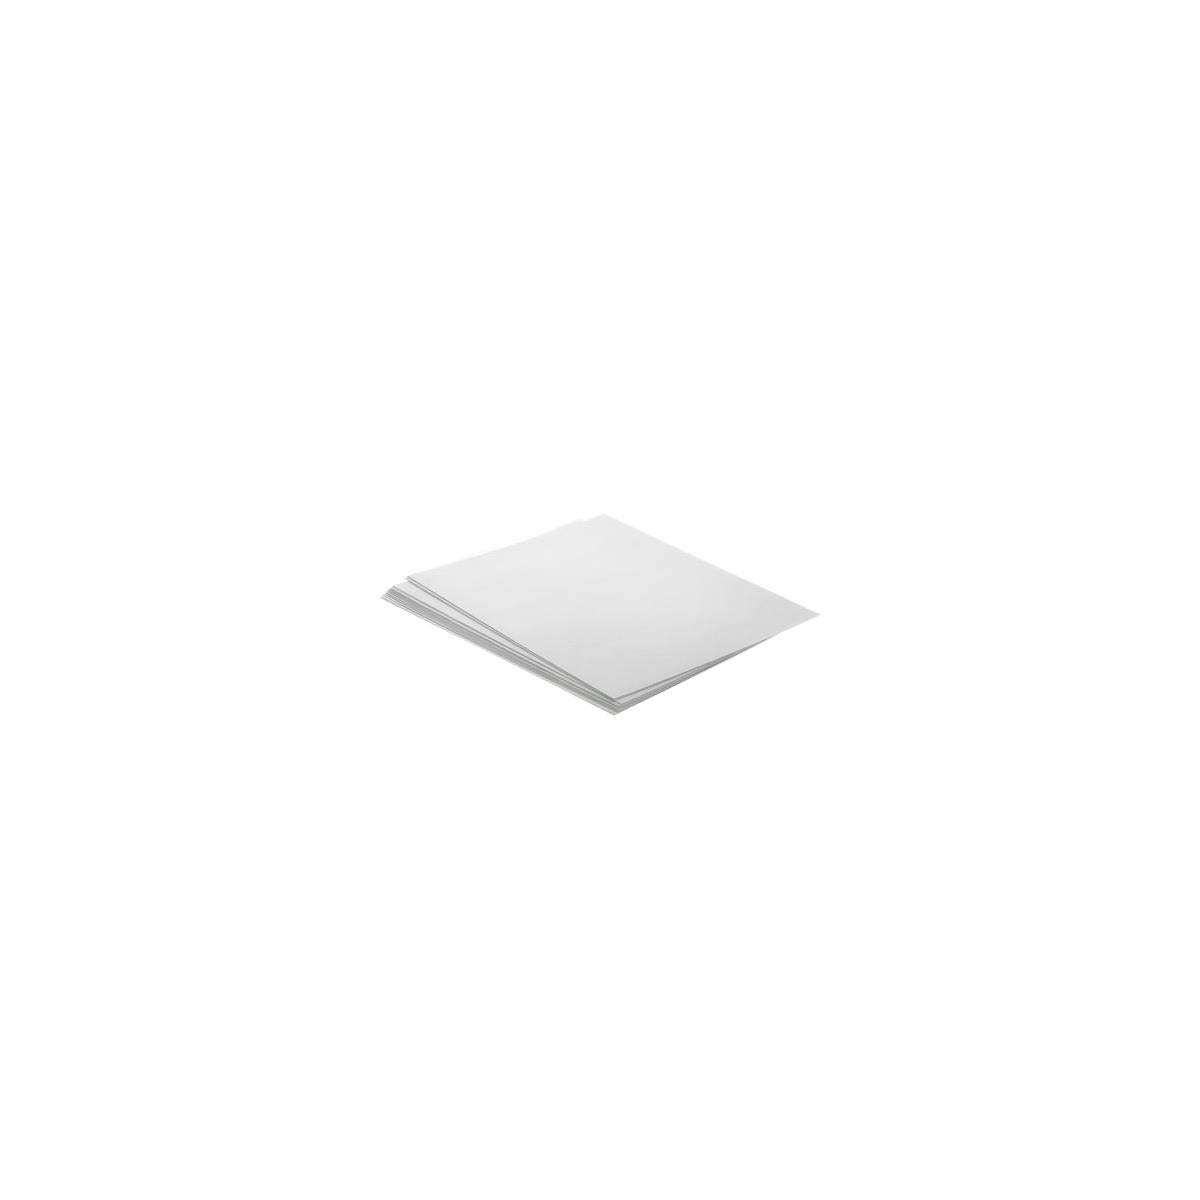 Adorama Variable Grade, Black and White Resin Coated Photo Enlarging Paper, 8x10, 25 Sheets, Glossy Surface